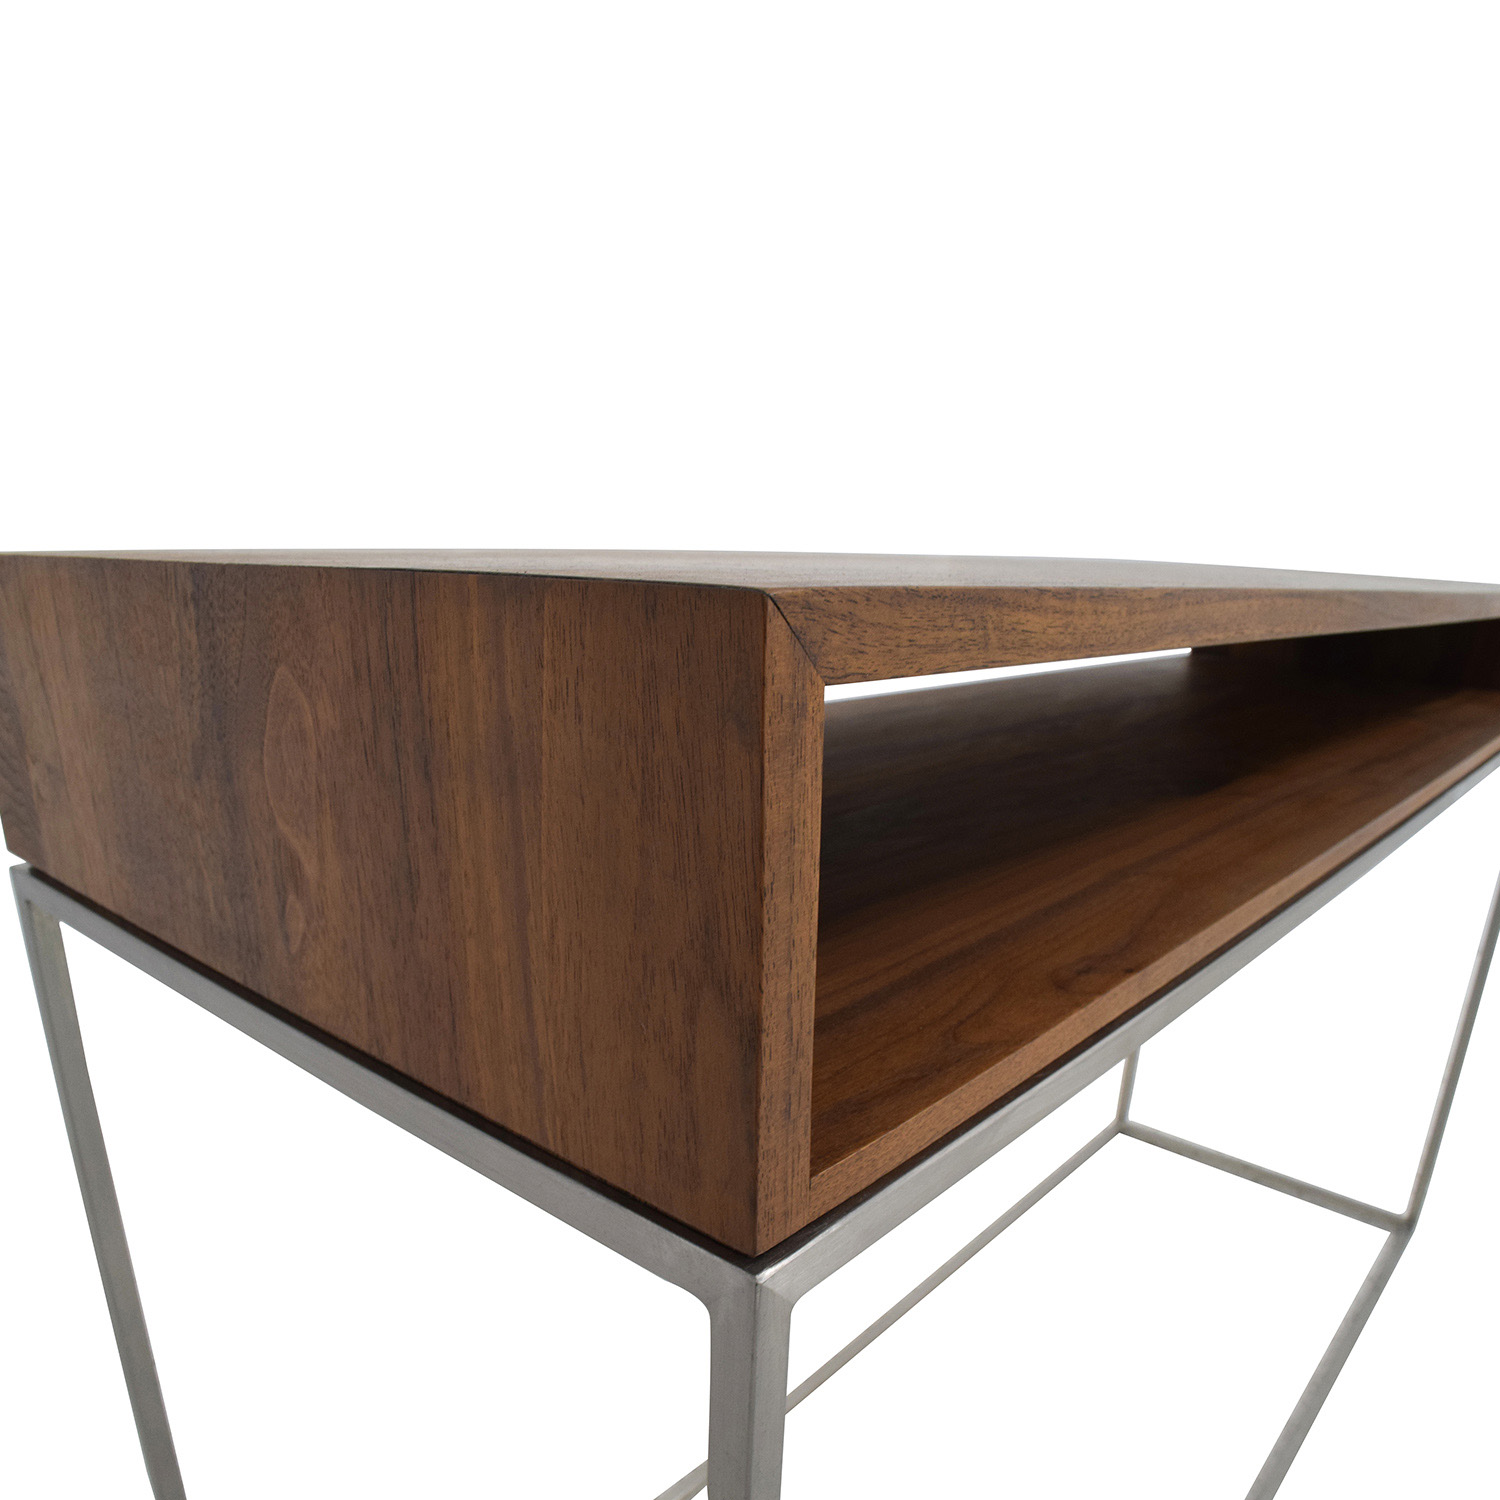 Off cb wood and metal frame console table tables